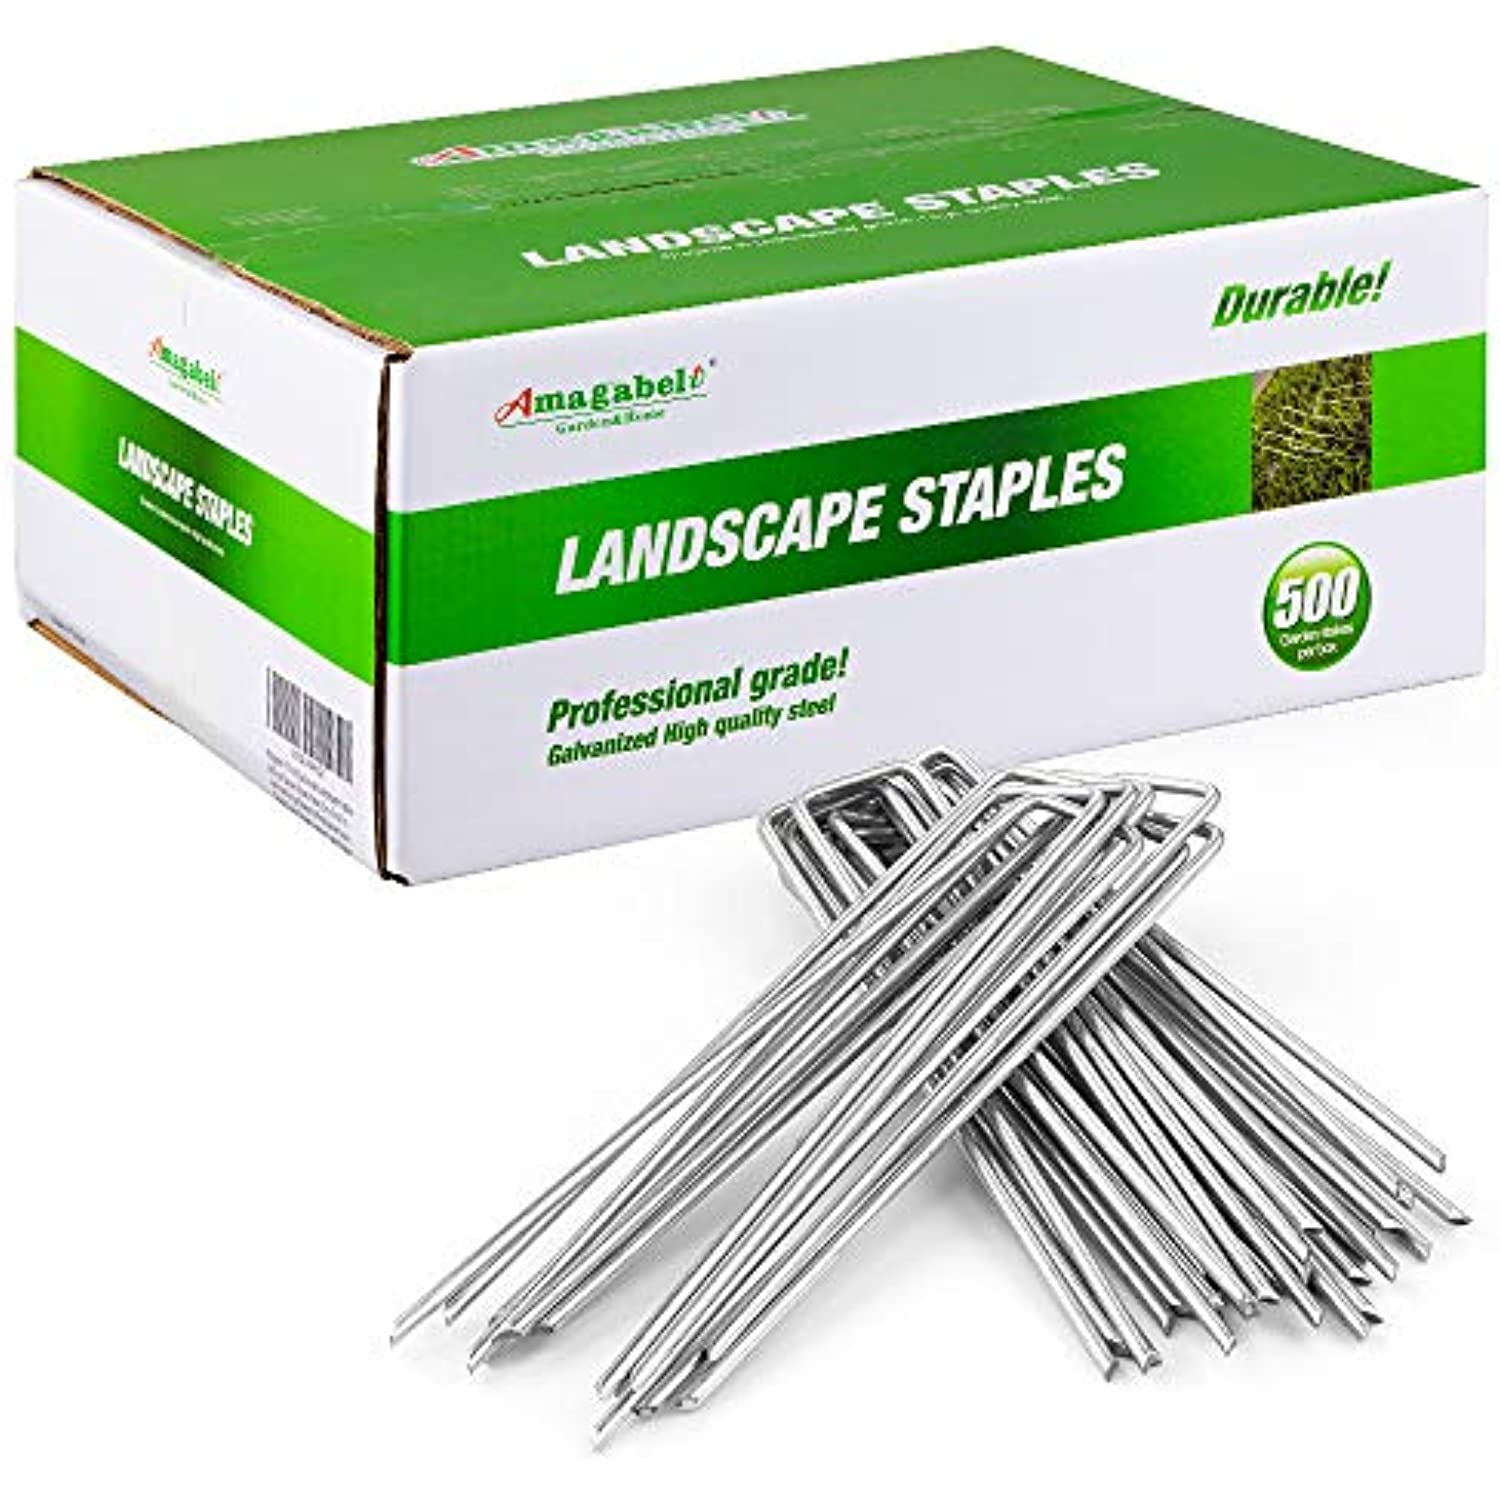 Amagabeli 8 Inch Galvanized Landscape Staples 500 Pack Garden Stakes Heavy-Duty Sod Pins Anti-Rust Fence Stakes for Weed Barrier Fabric Ground Cover Dripper Irrigation Tubing Soaker